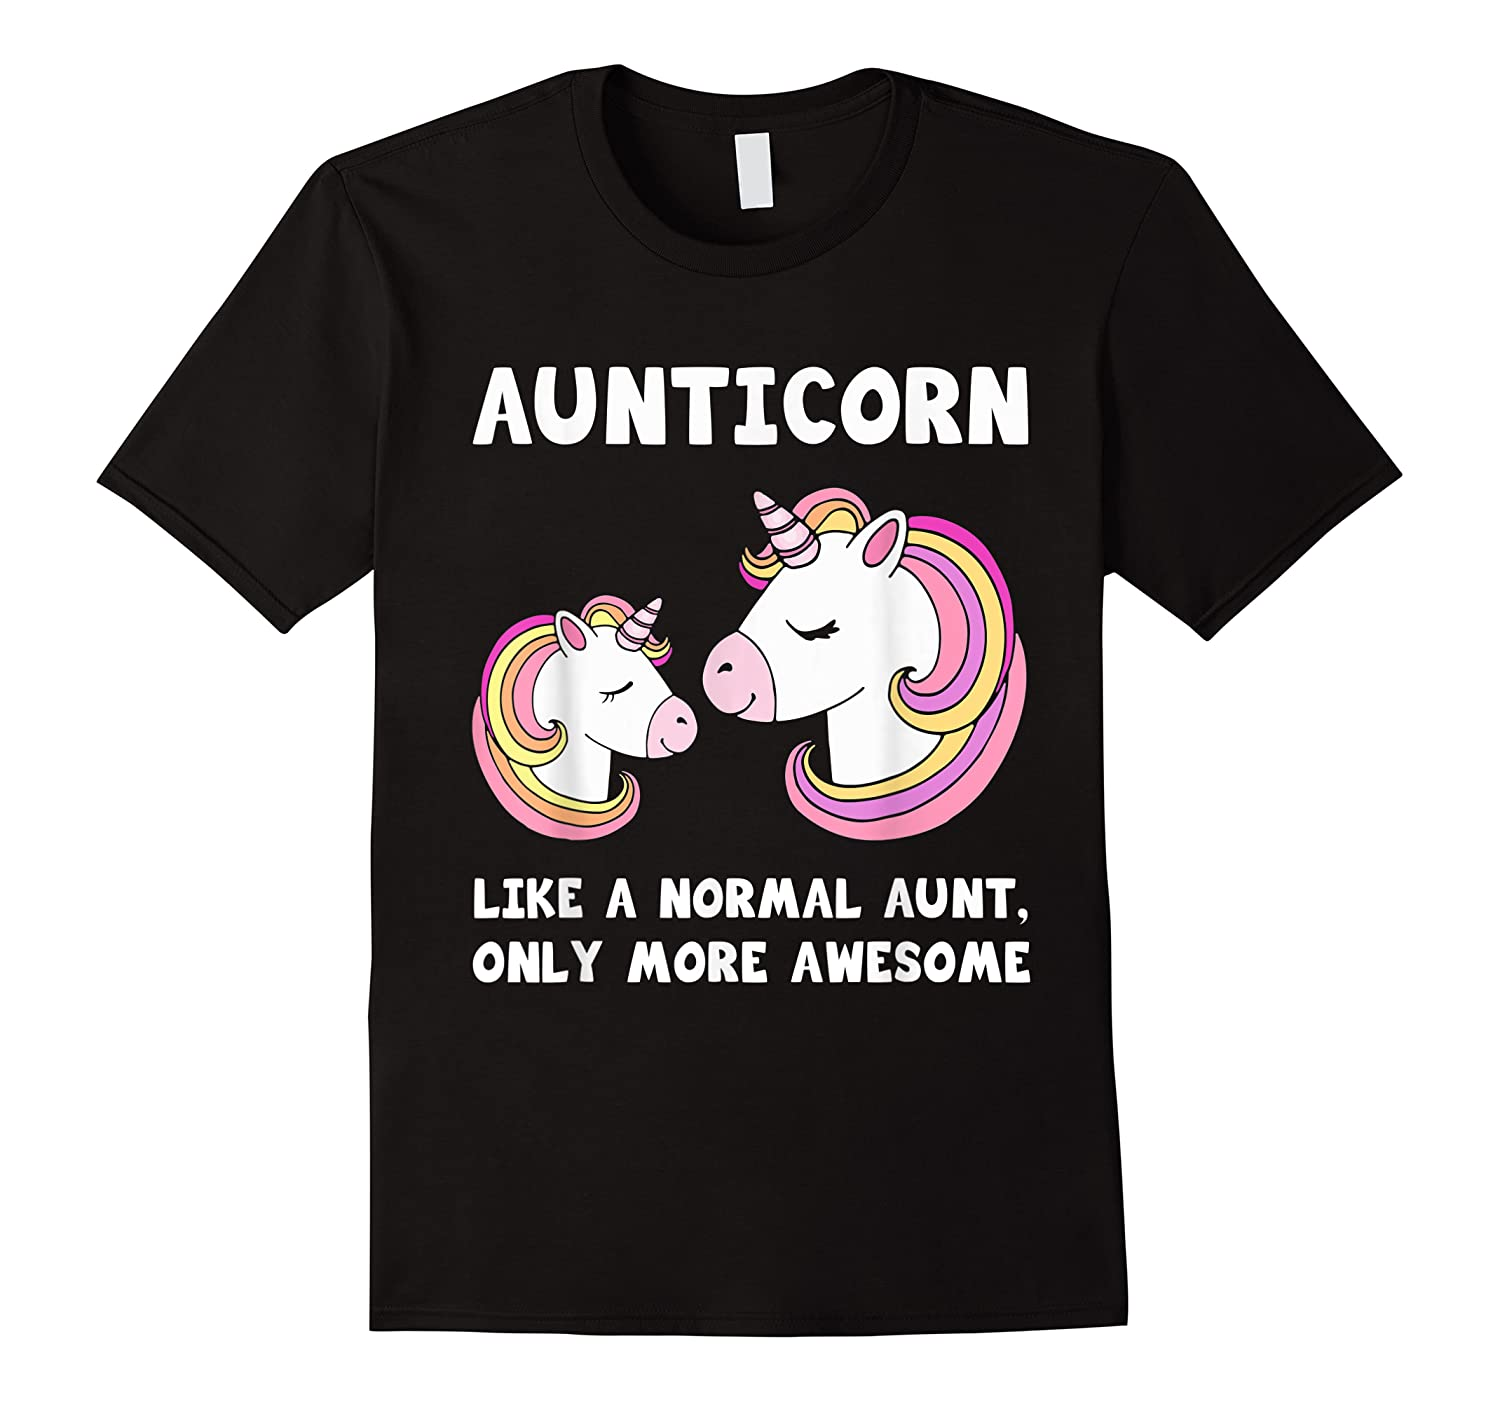 Aunticorn Unicorn Aunt And Baby Mothers Day Gift Shirts